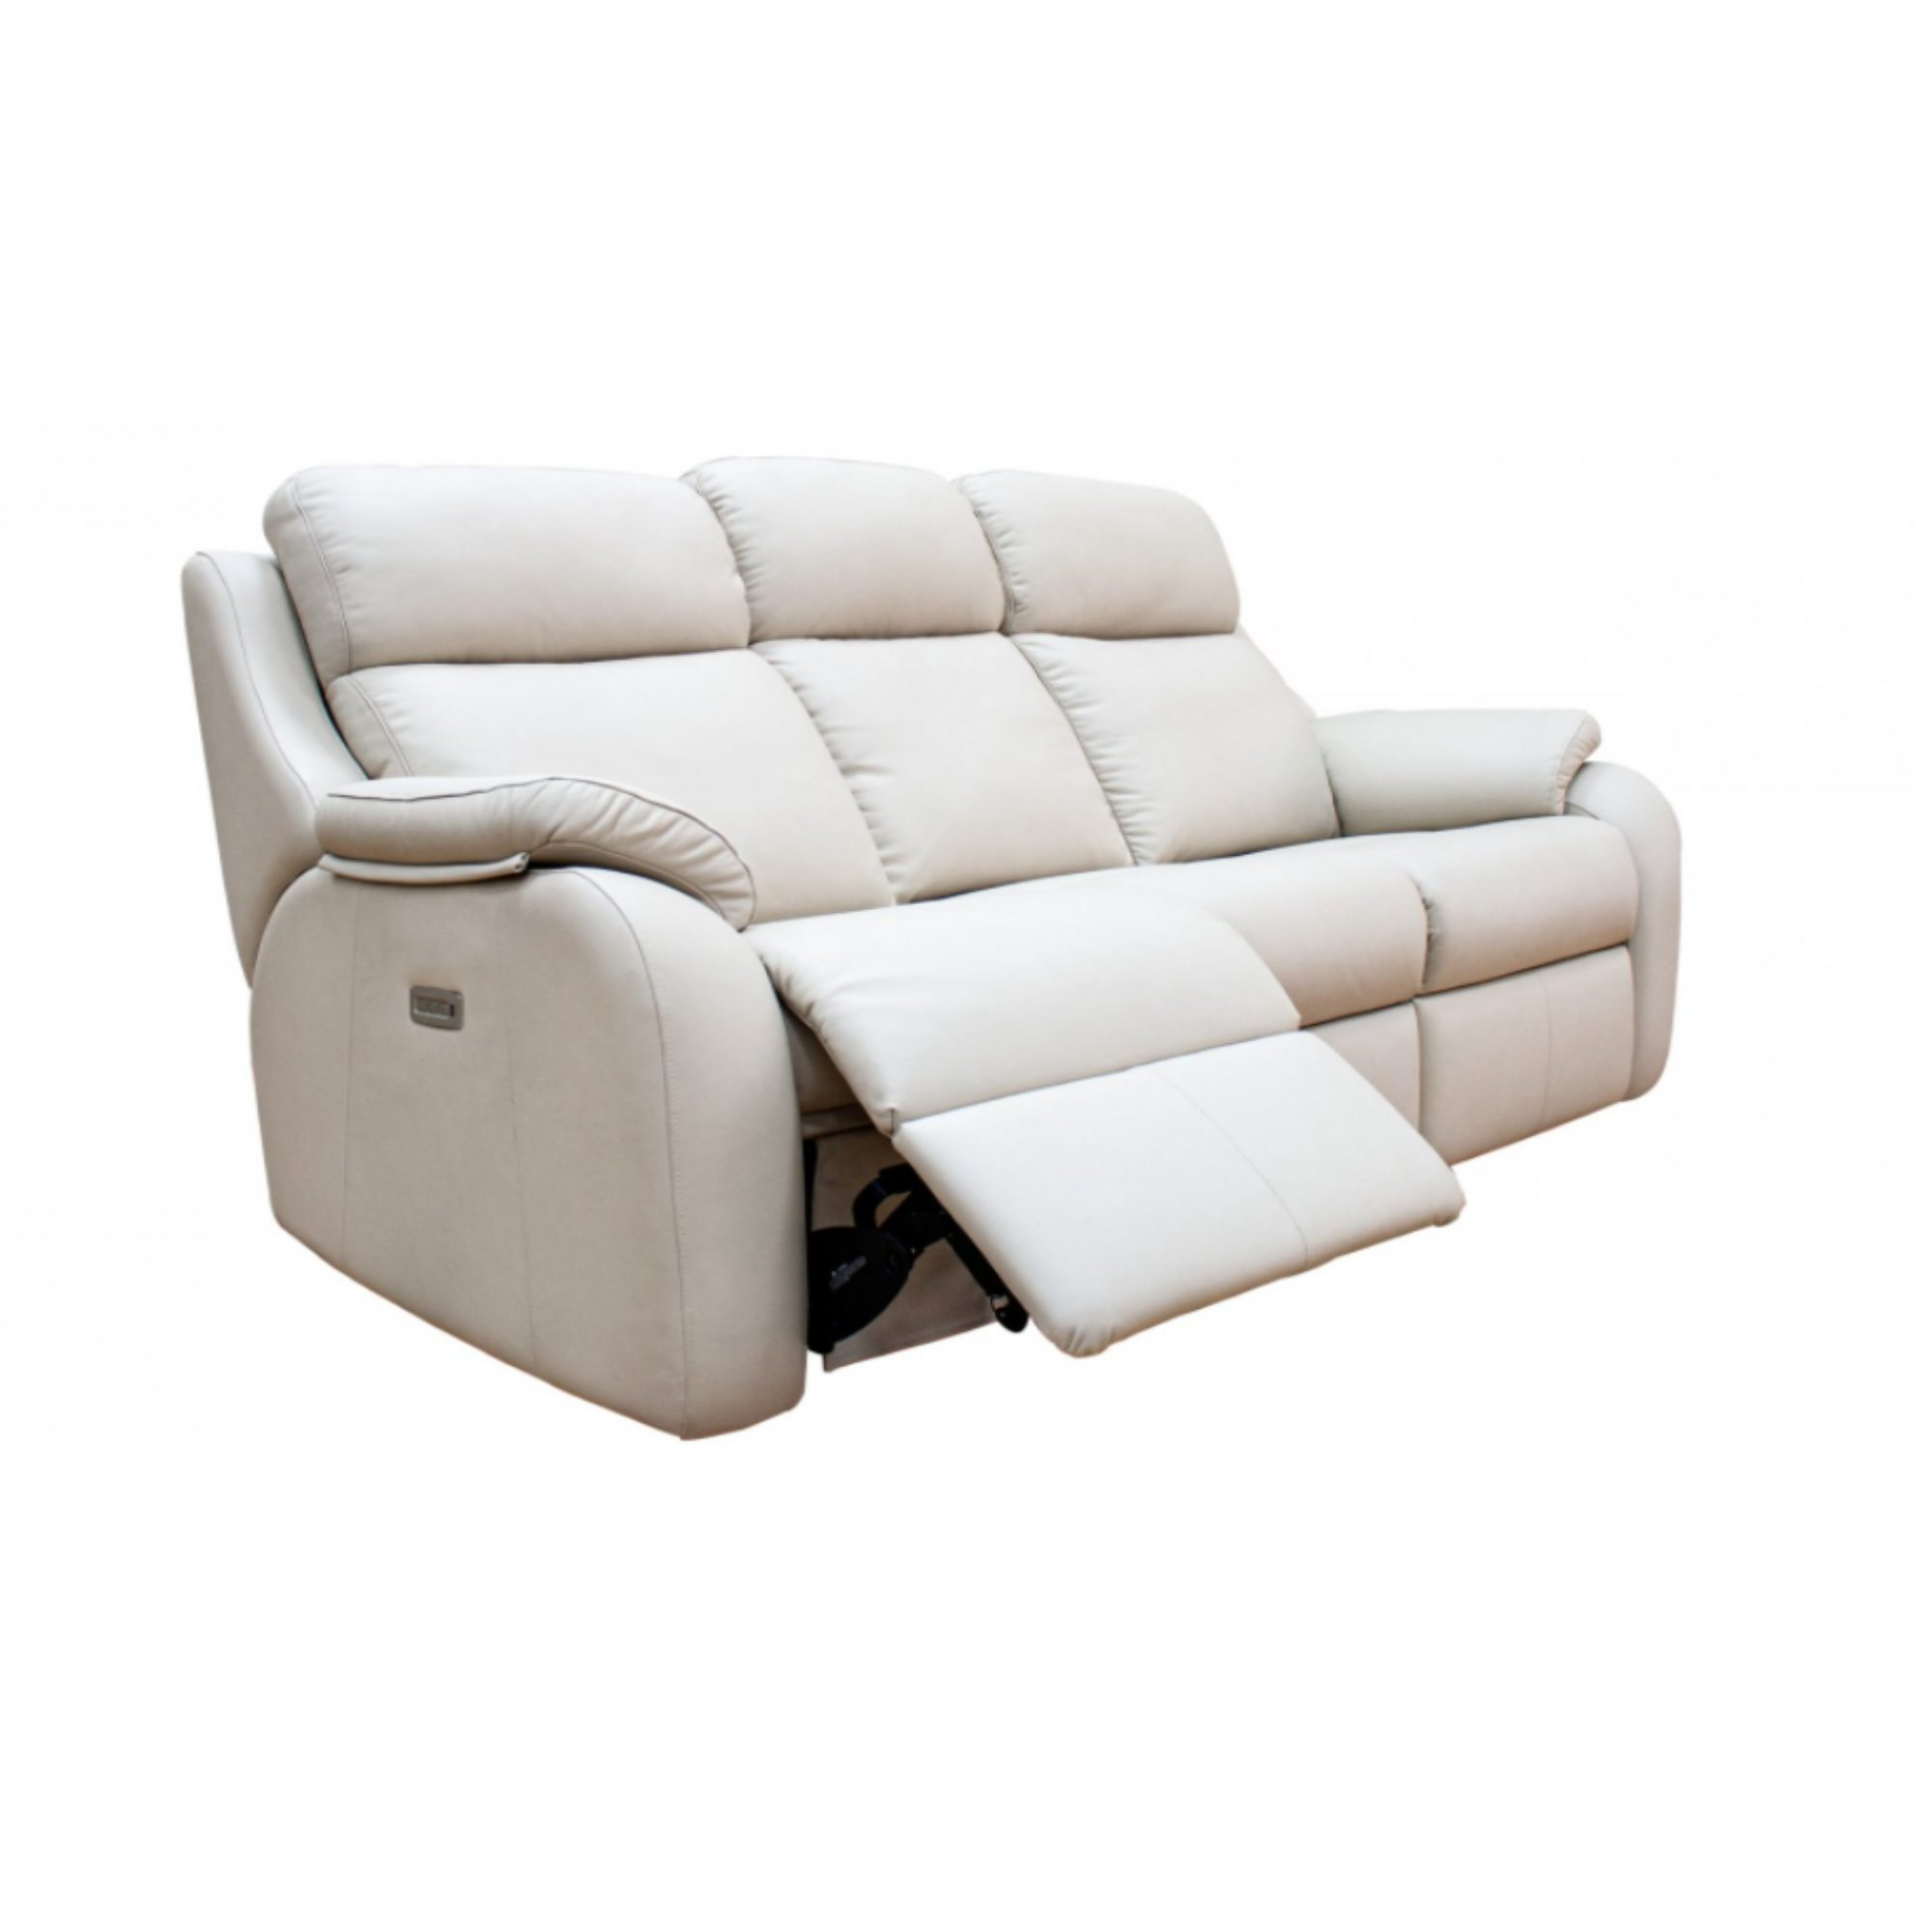 G Plan Upholstery G Plan Kingsbury 3 Seater Double Electric Recliner Sofa Sofas Hafren Furnishers